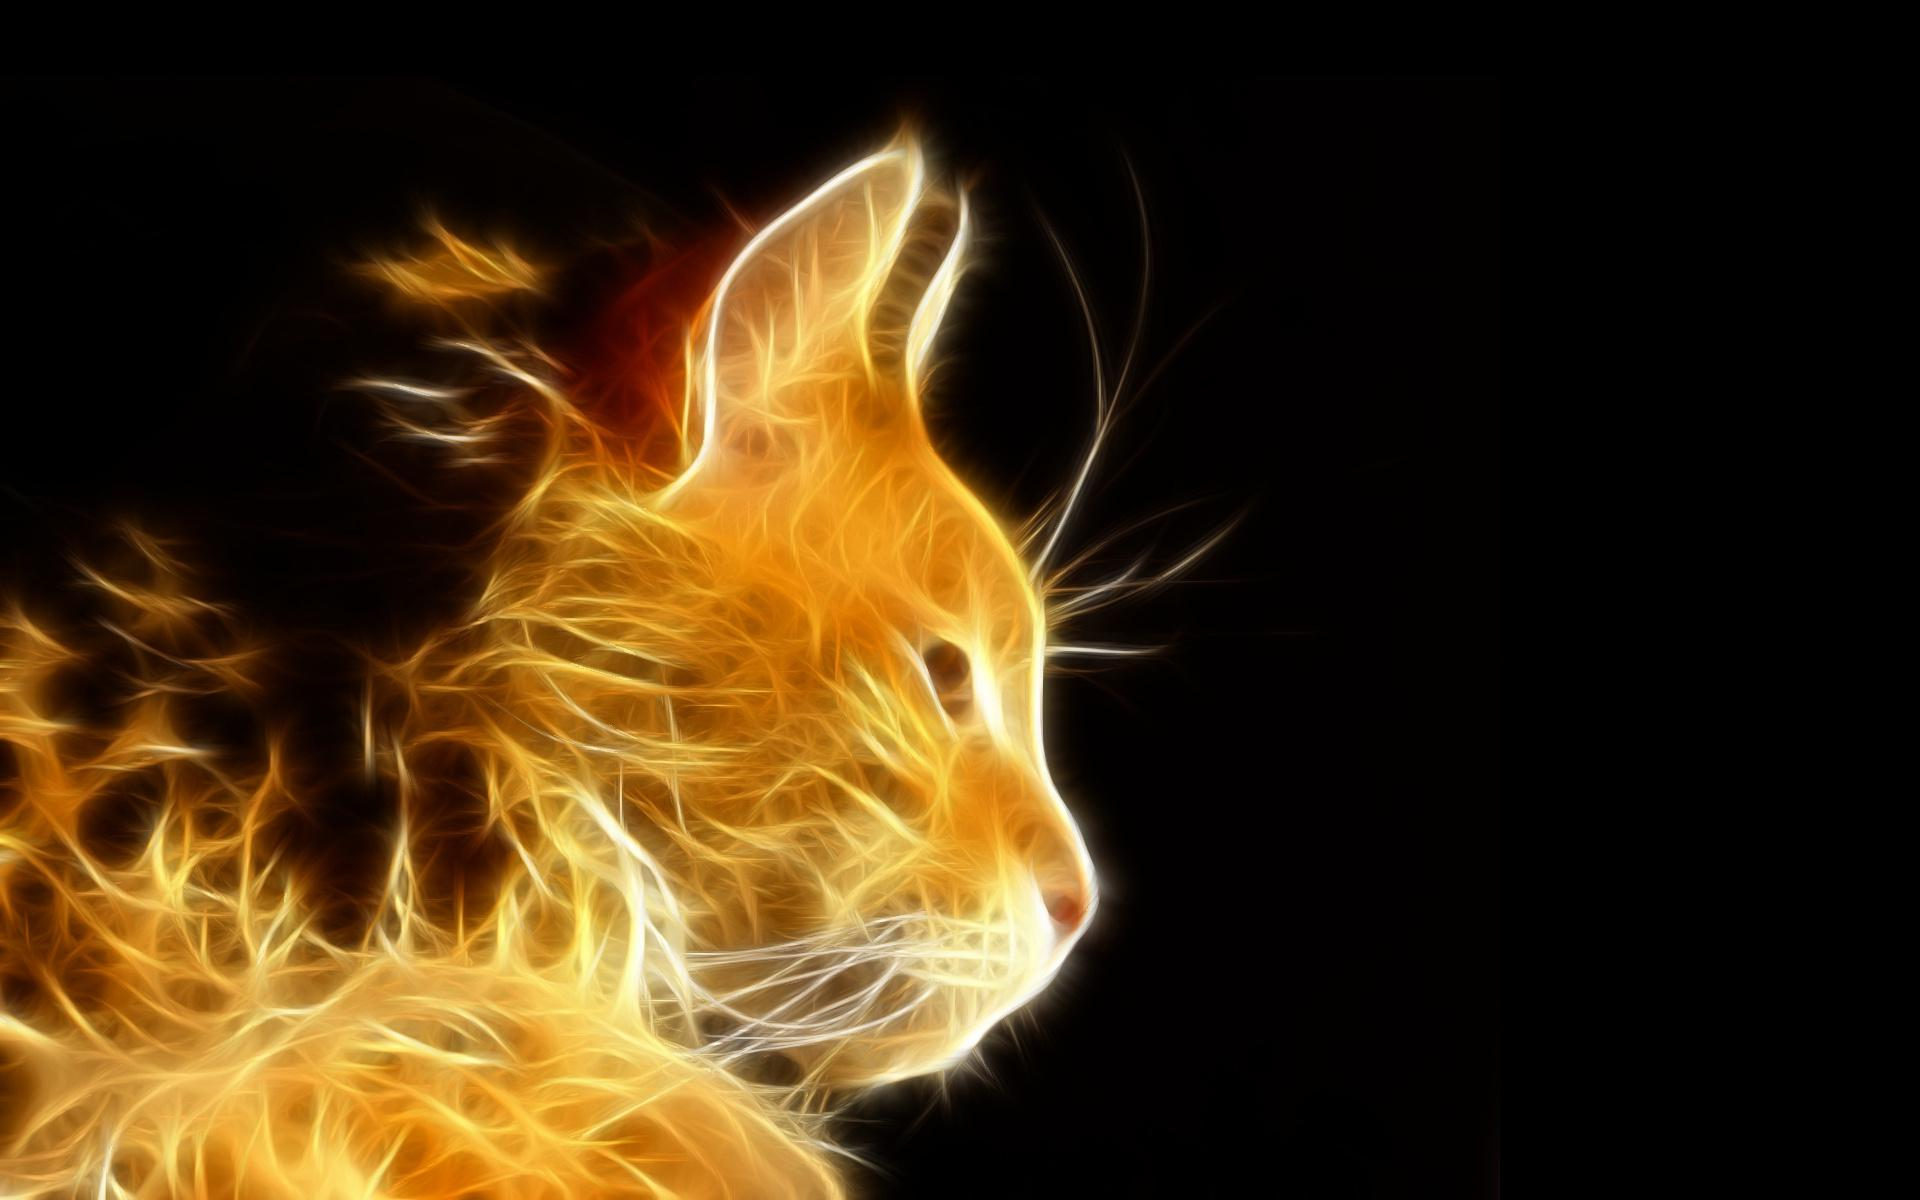 Cute Background Wallpaper For Computer Christmas Lights Animal Hd Hd Photoshop Light Rays Cat Cats Fractal Photo Download